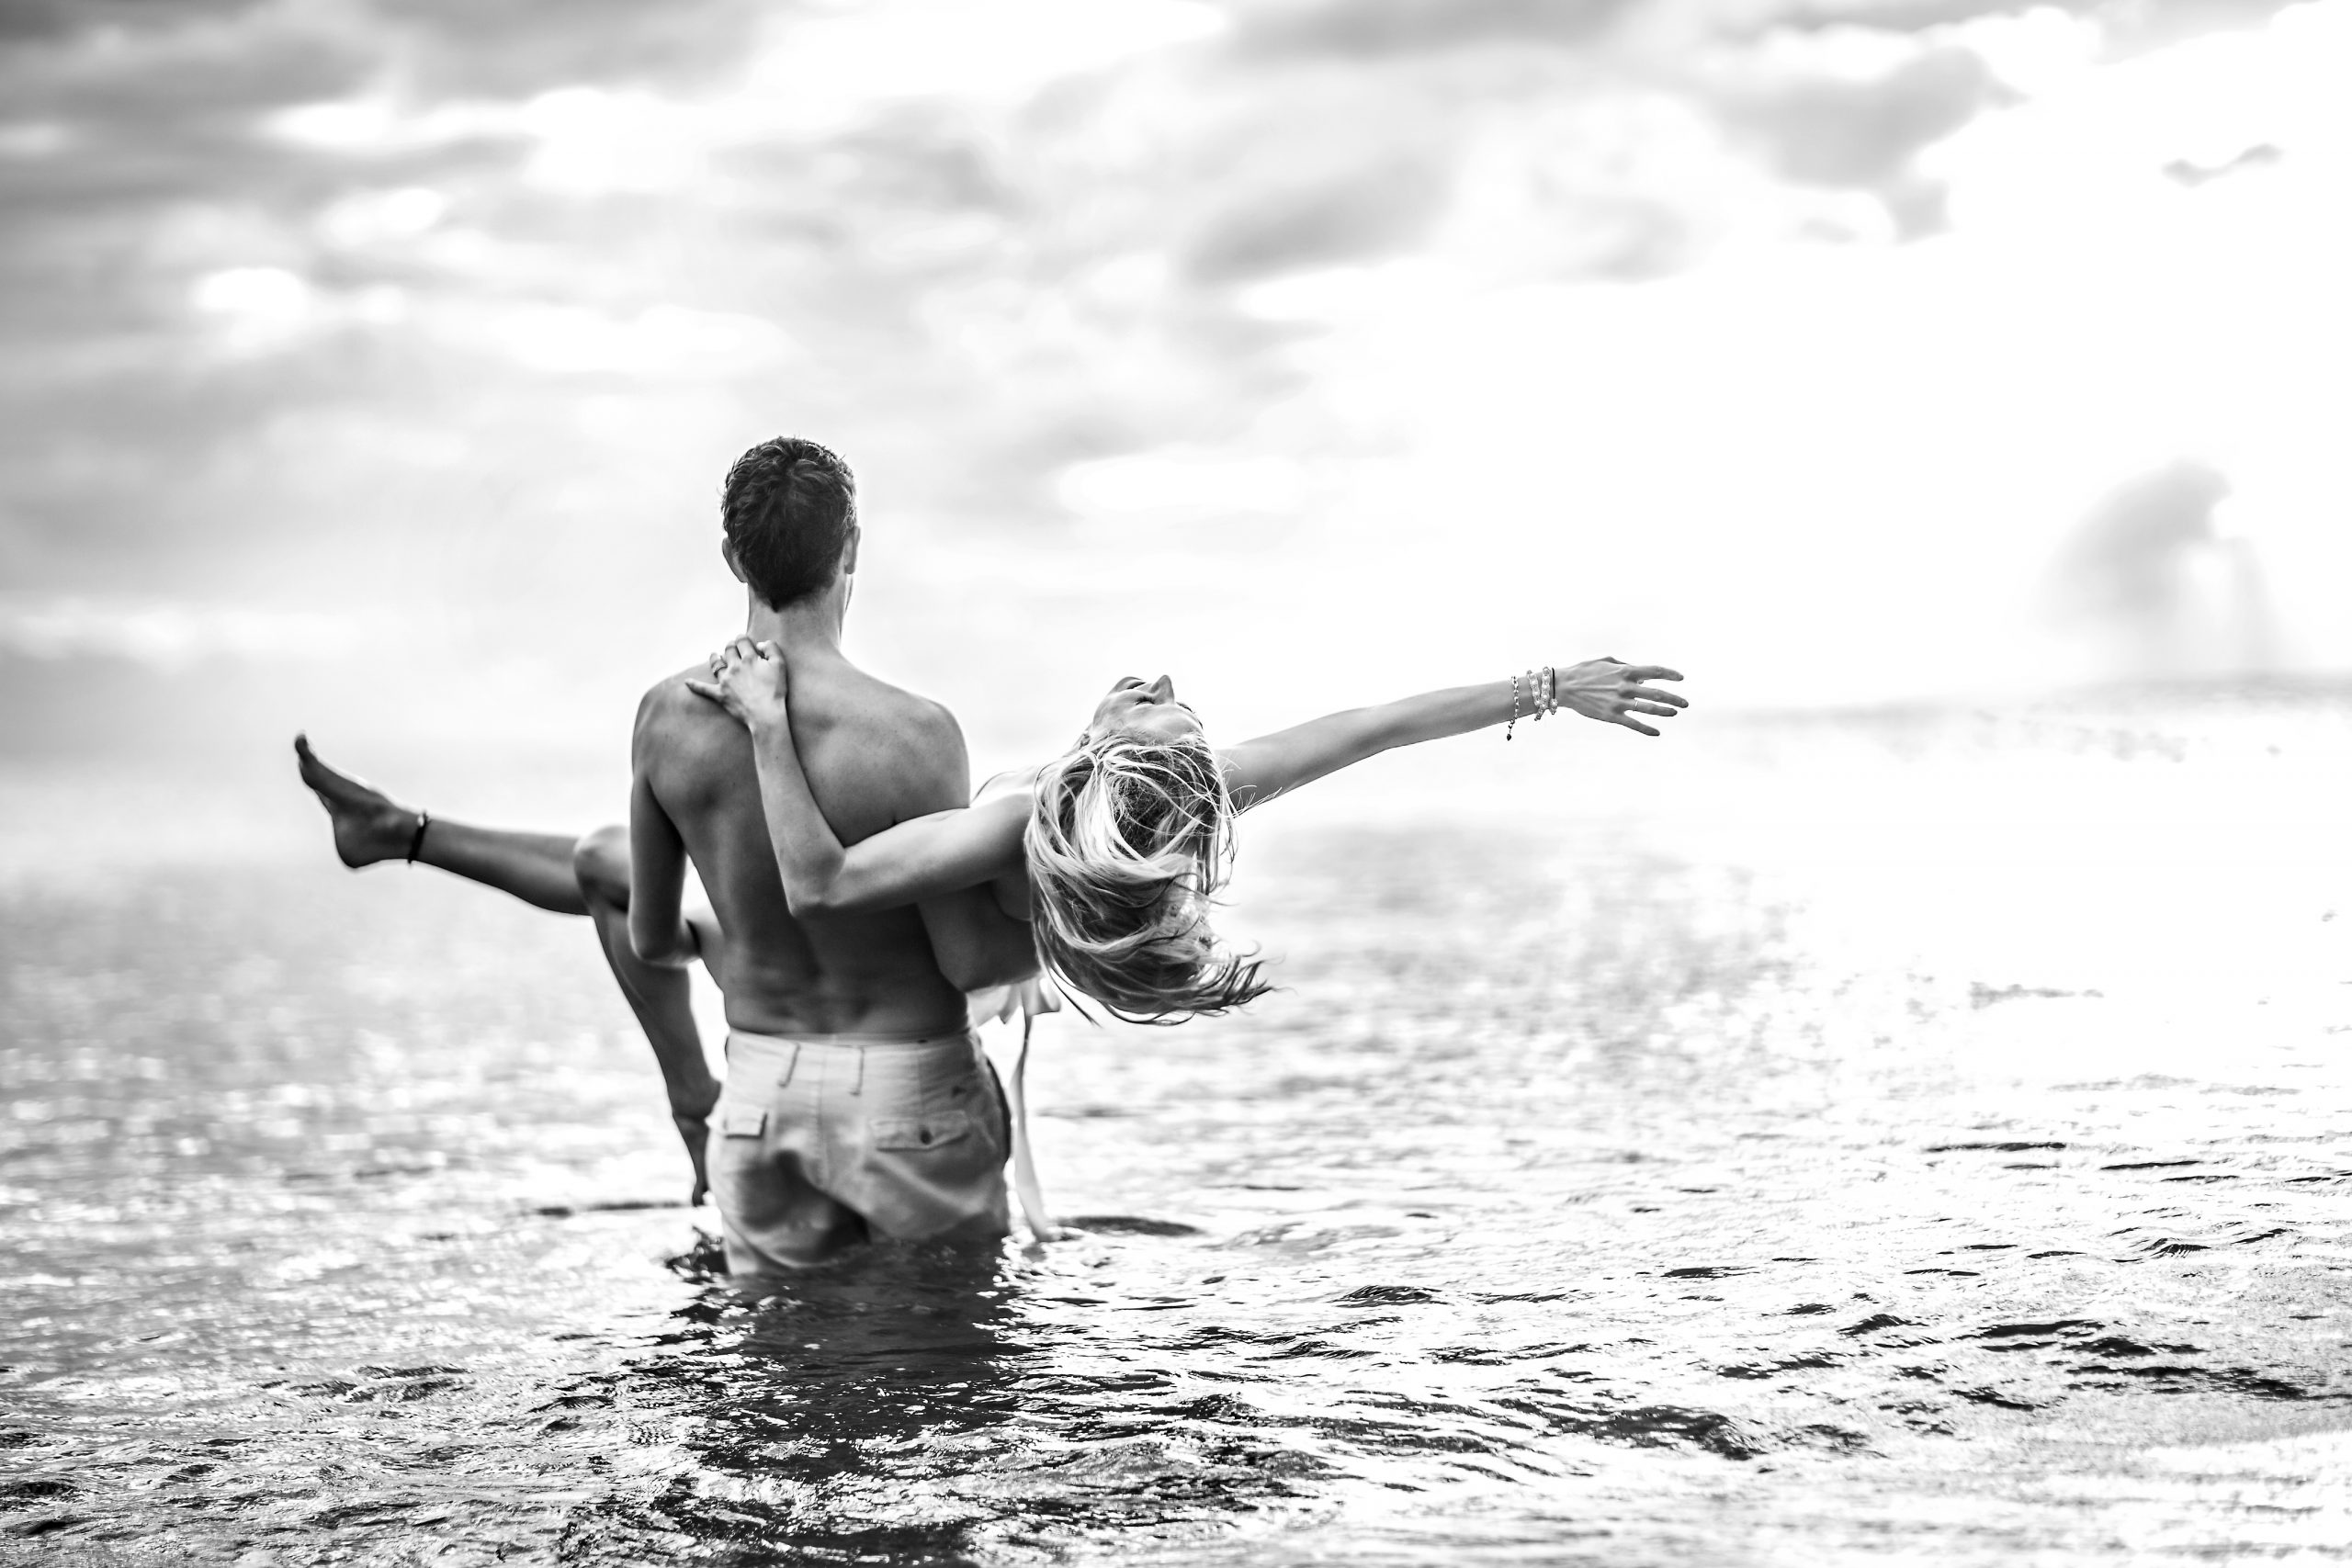 Man holds woman as they walk into a body of water